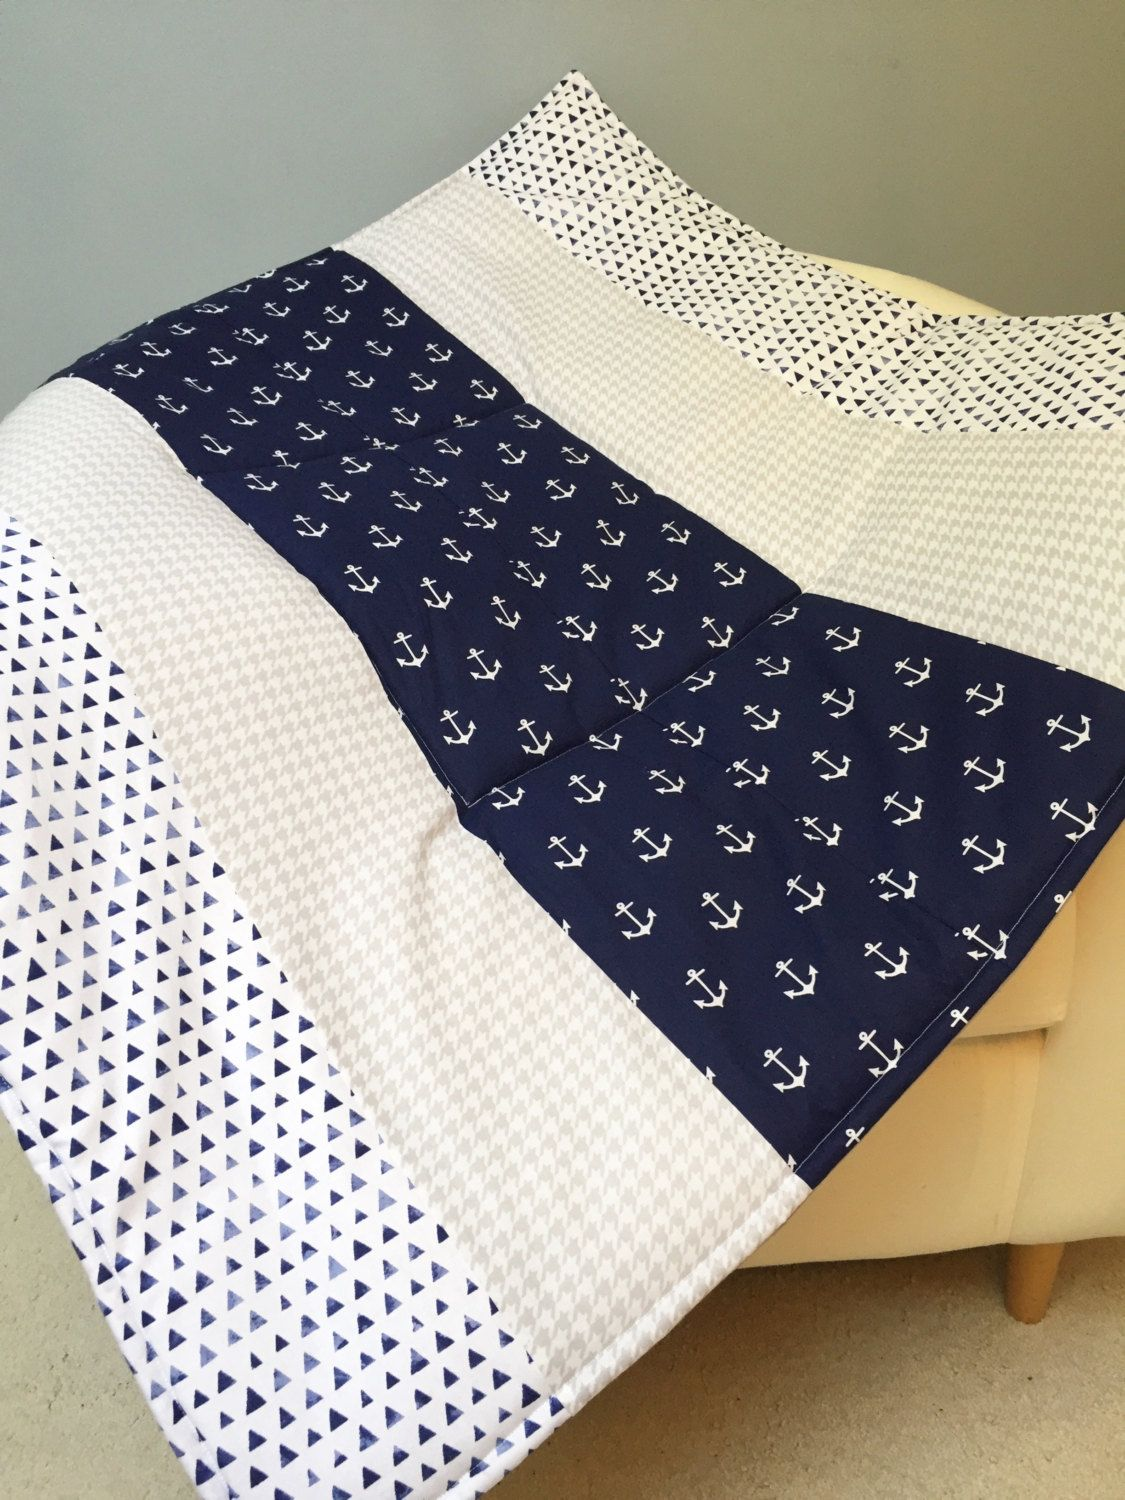 Baby Play Mat Padded Floor Blanket Anchors Navy Gray White Gender Neutral Modern Quilt Tummy Time Newborn Gift Personalize Nap 35 X By